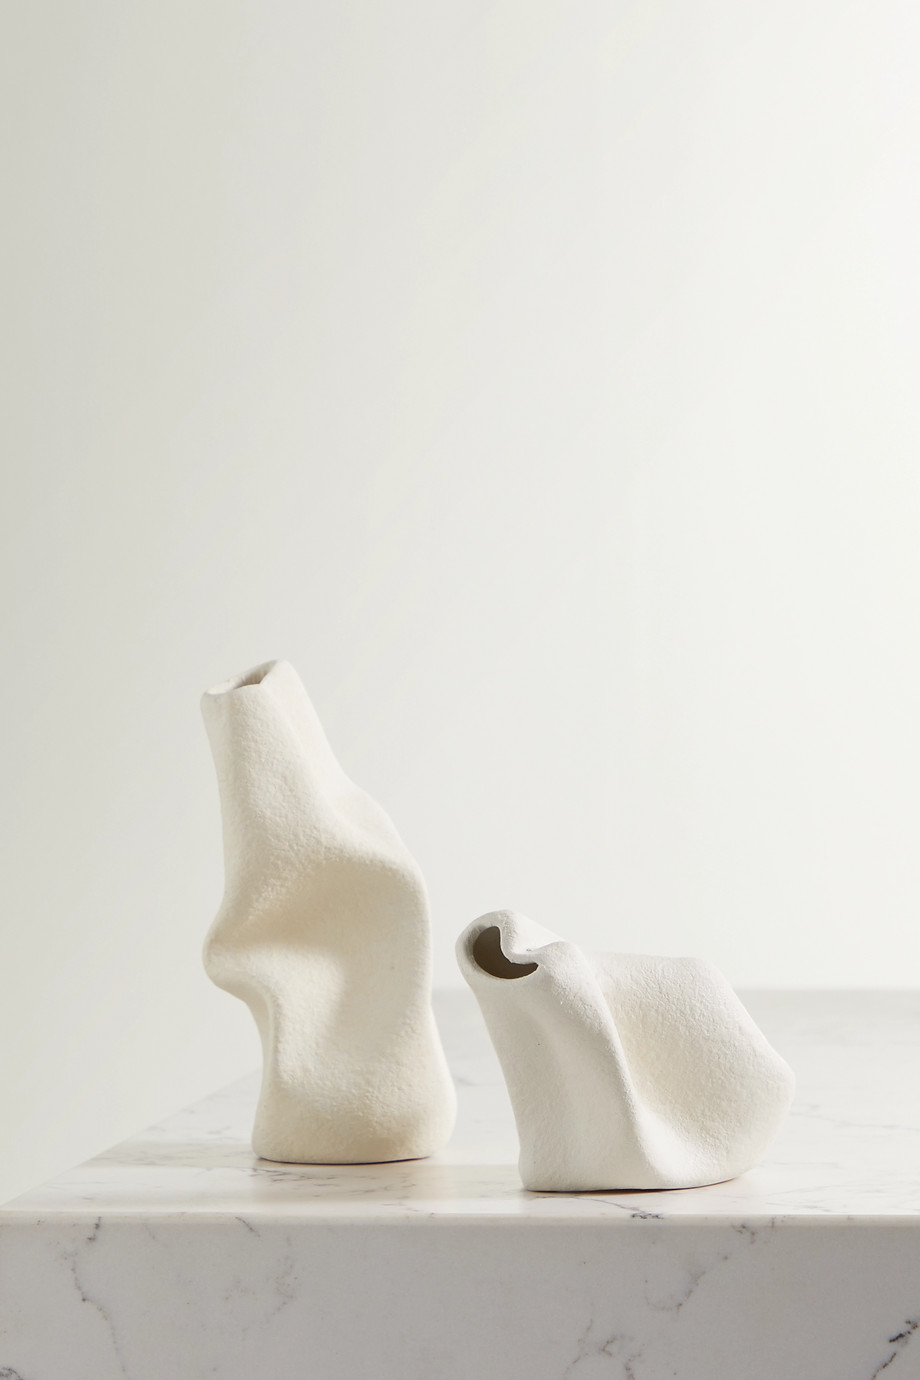 Completedworks + Ekaterina Bazhenova Yamasaki Goliath and Wake set of two ceramic vases